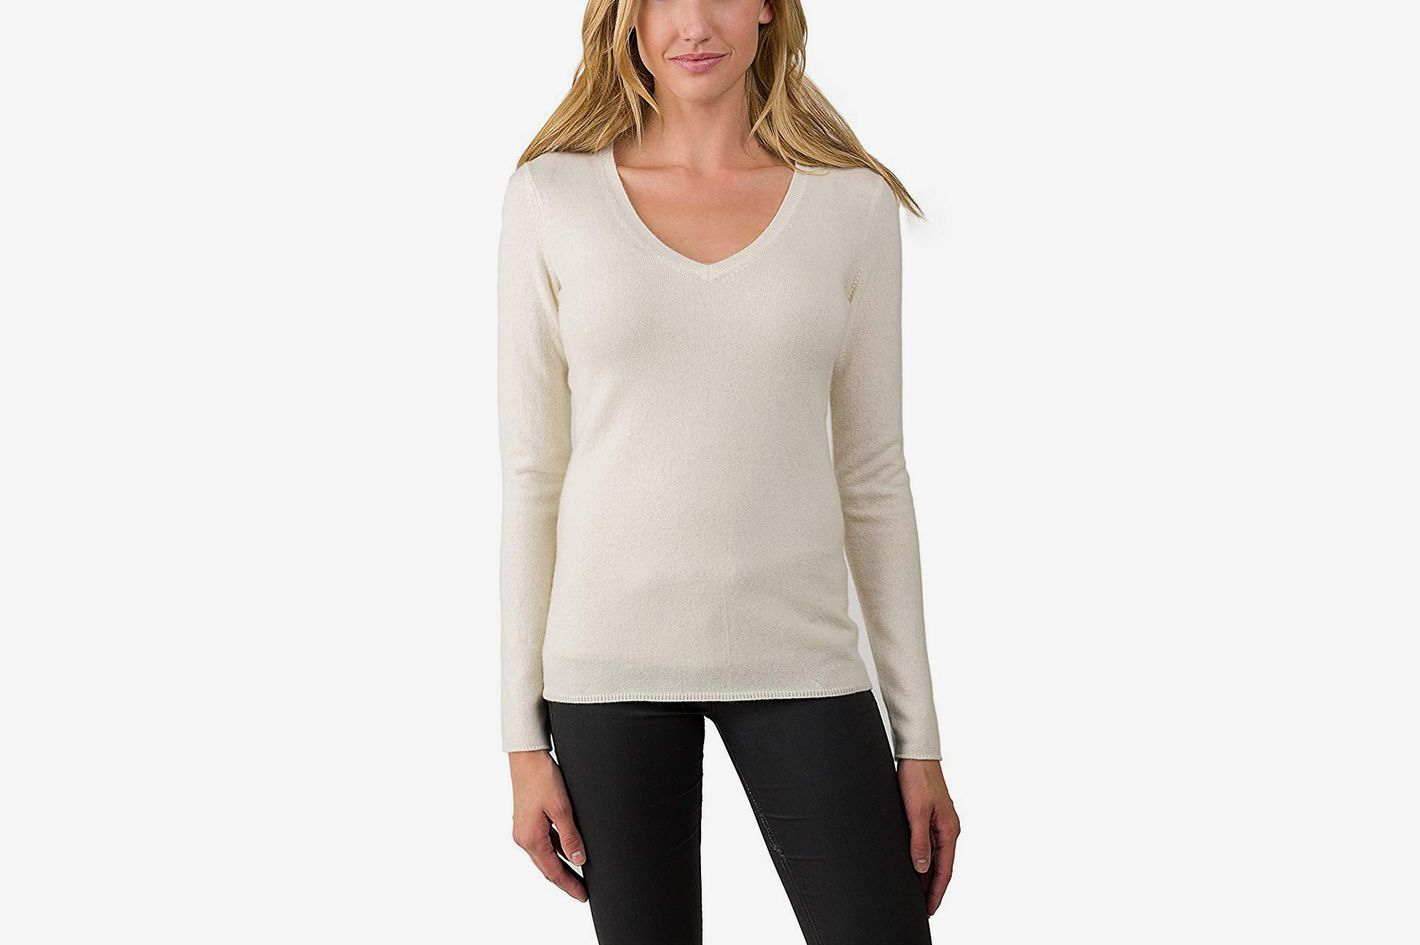 JENNIE LIU Women's 100% Pure Cashmere Long Sleeve Pullover V Neck Sweater